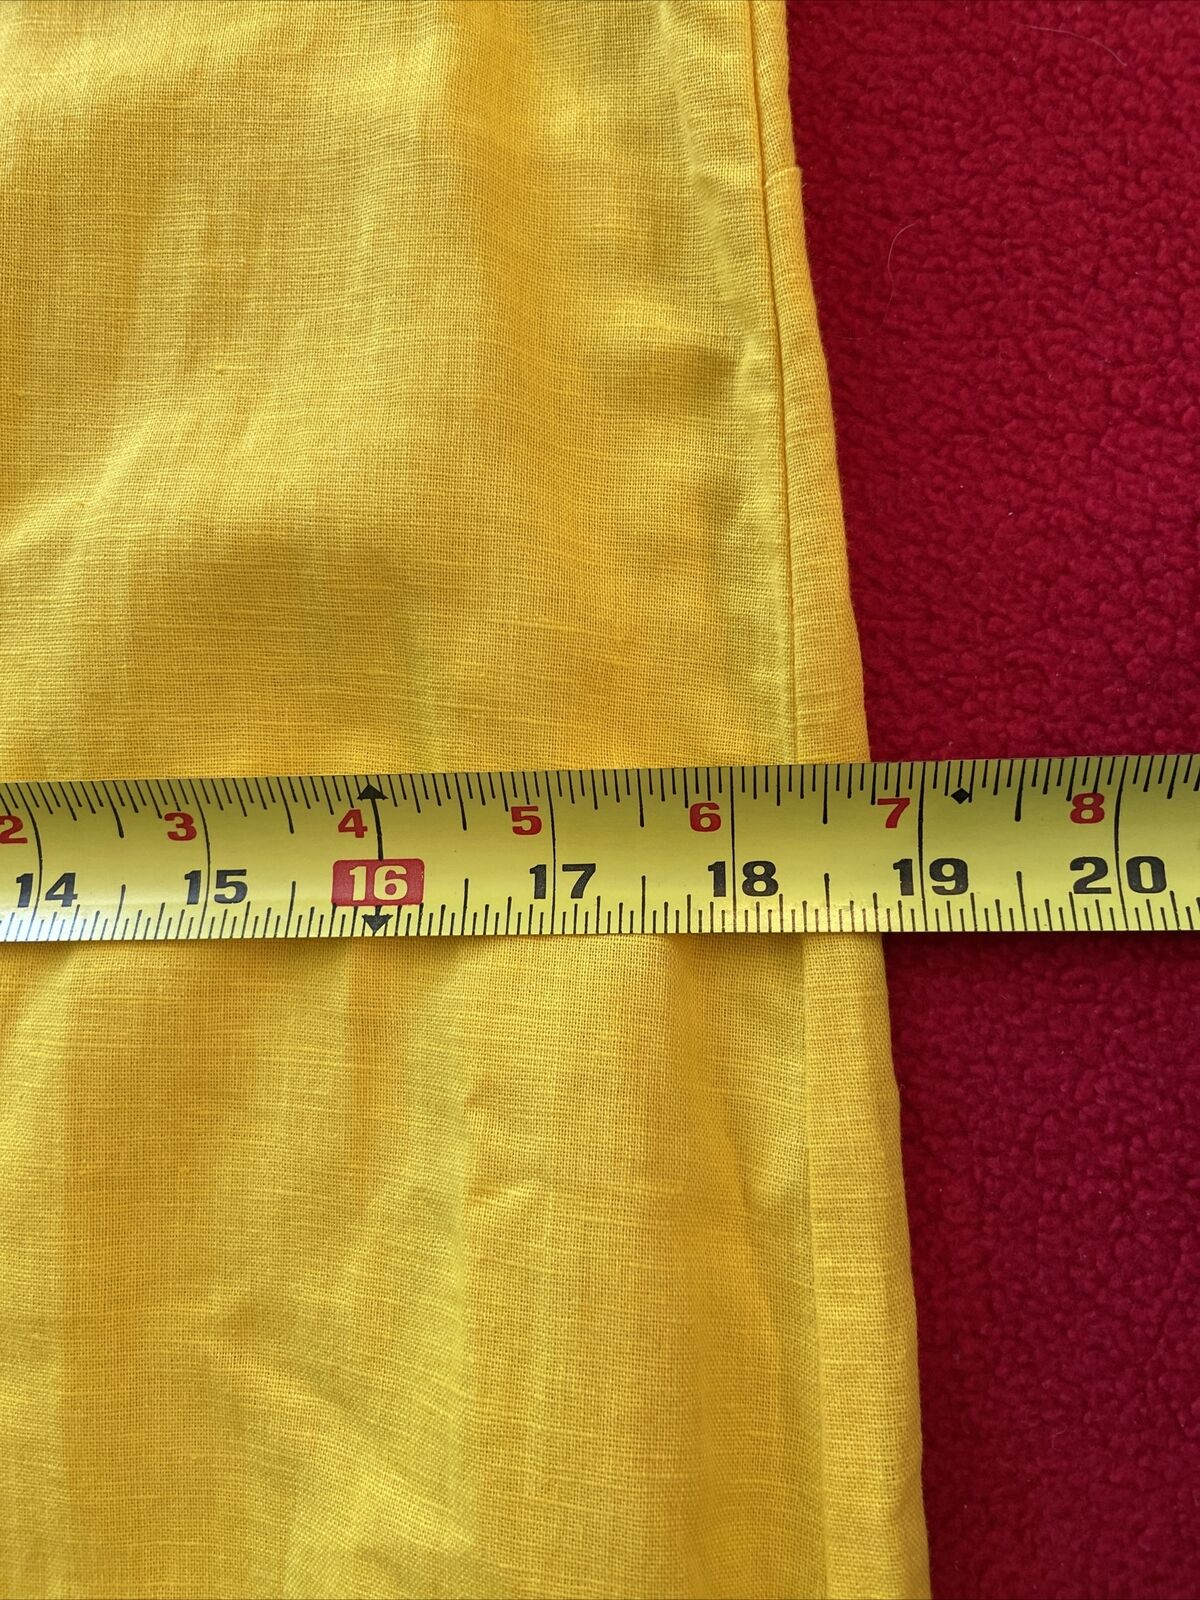 floryday bright yellow linen shift dress size med… - image 9